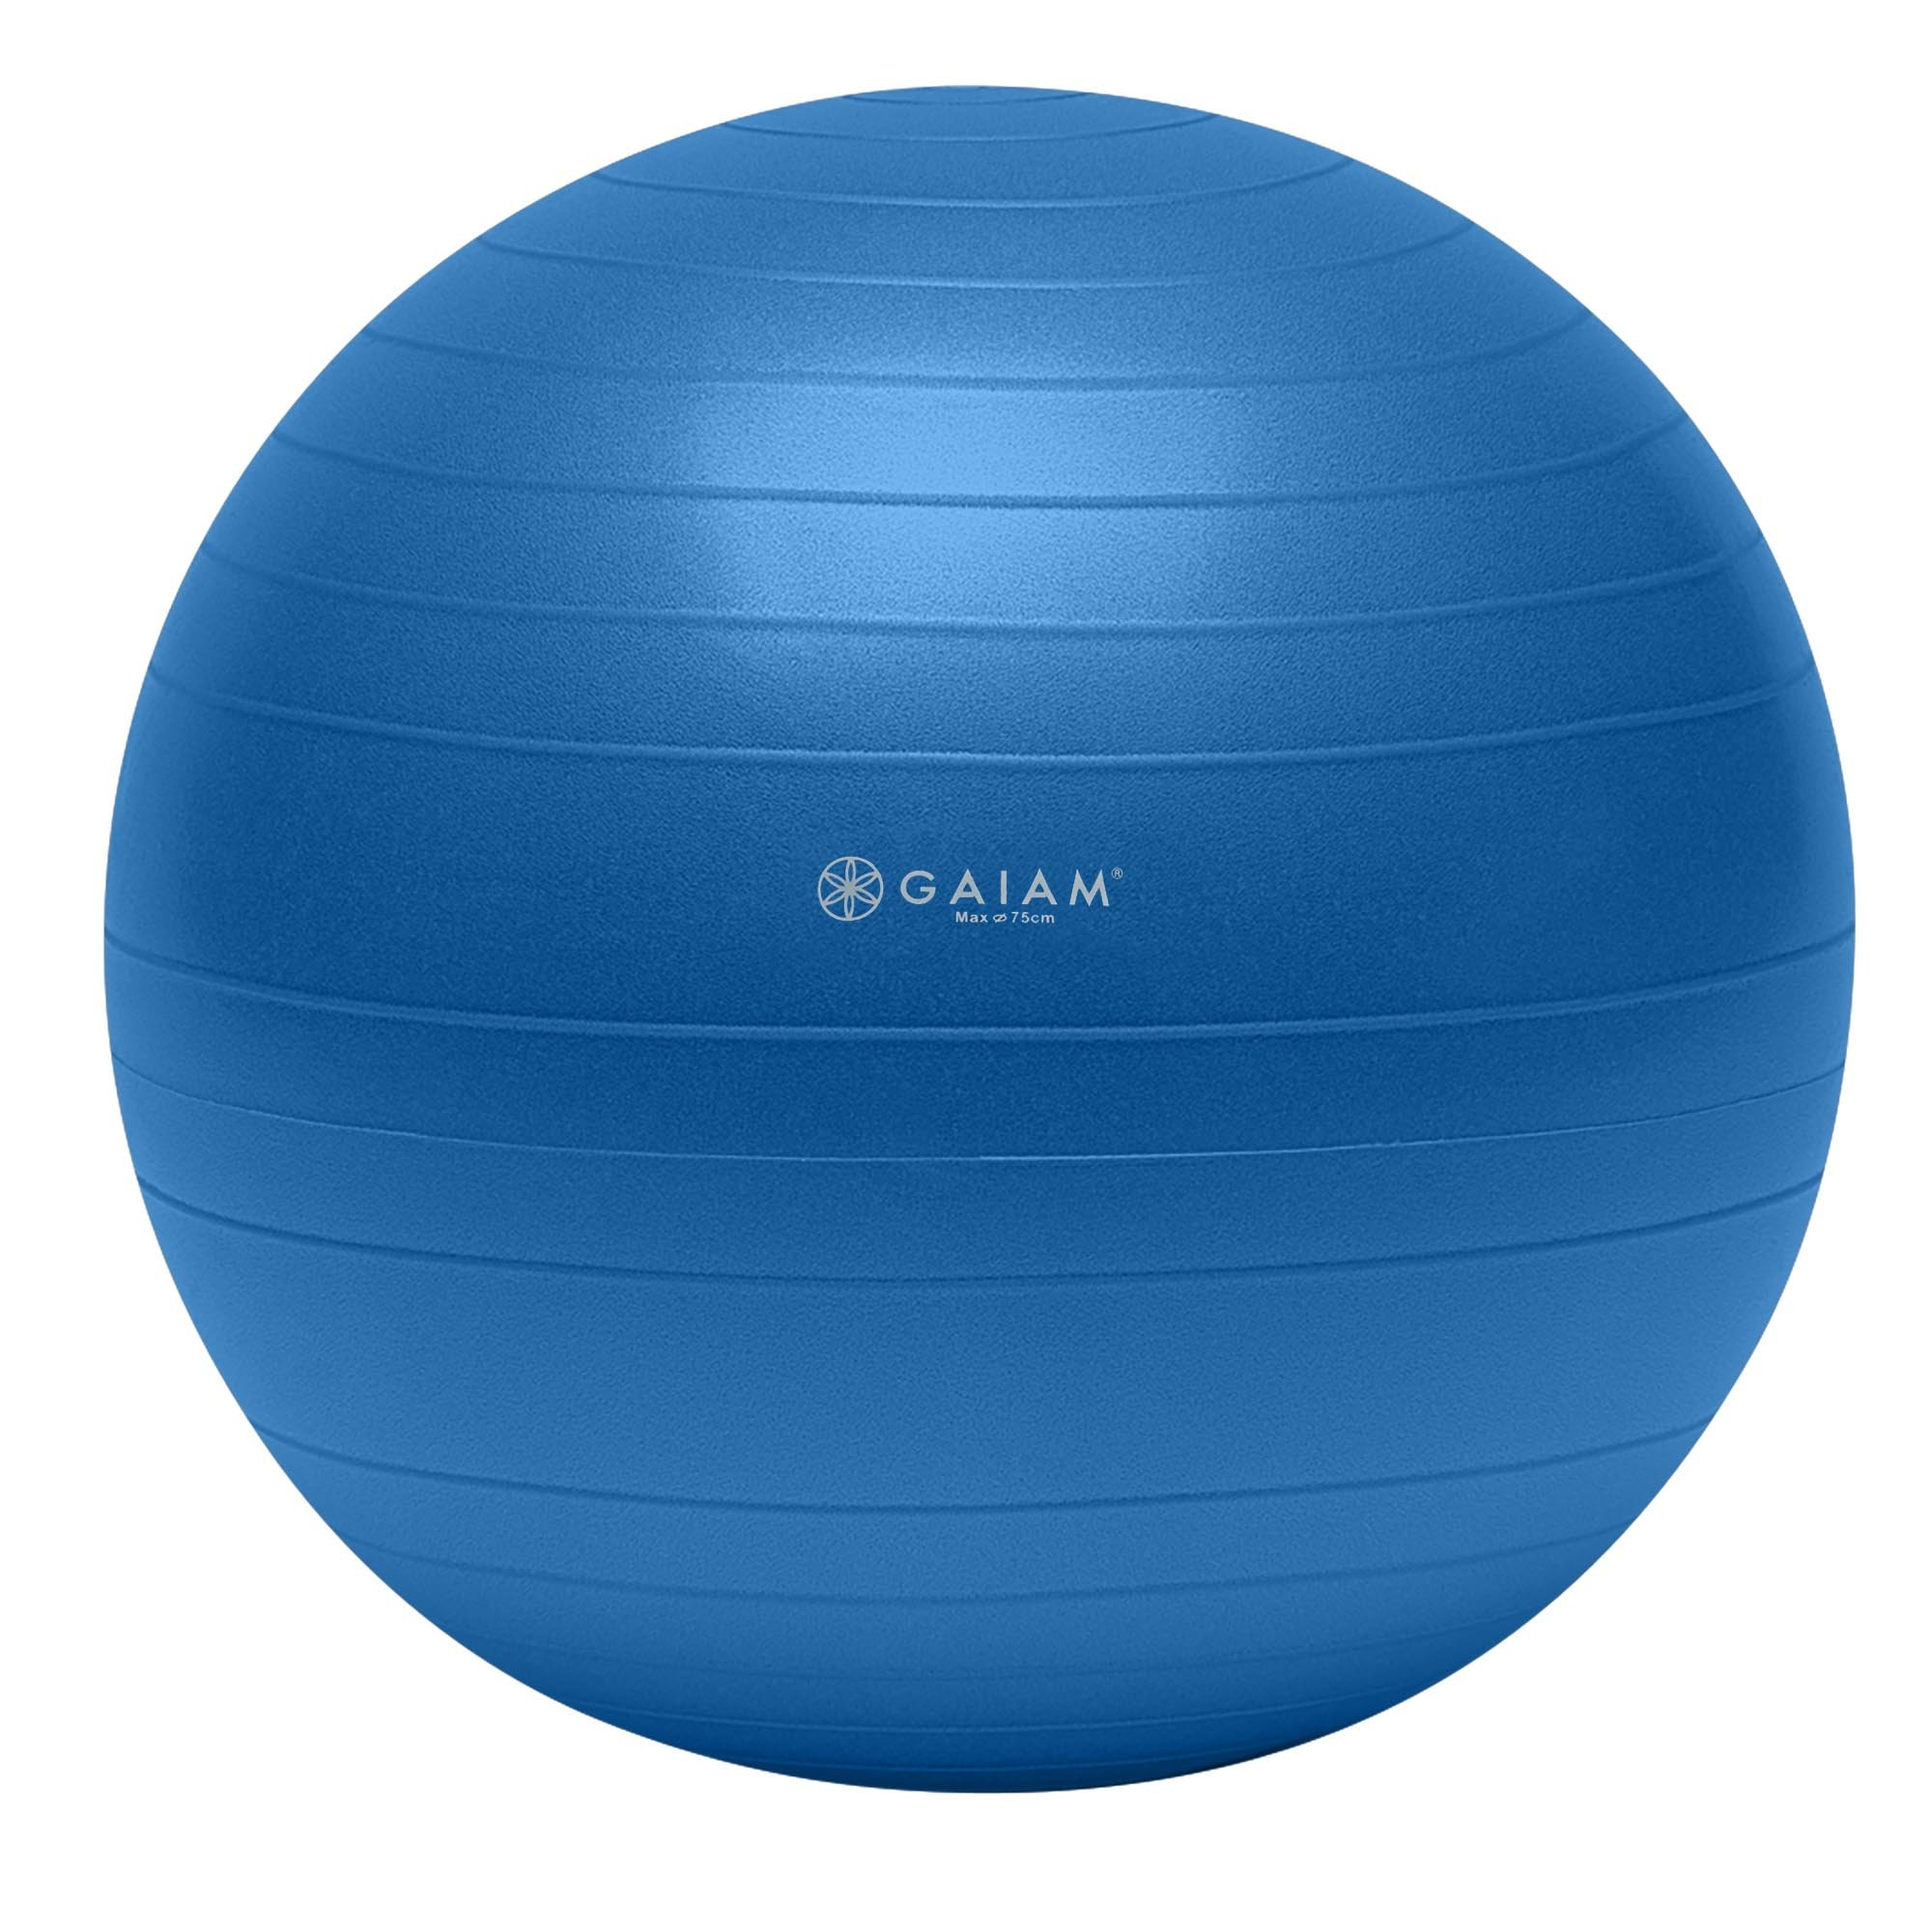 Gaiam Total Body Balance Ball Kit - Includes 75cm Anti-Burst Stability Exercise Yoga Ball, Air Pump, Workout Program